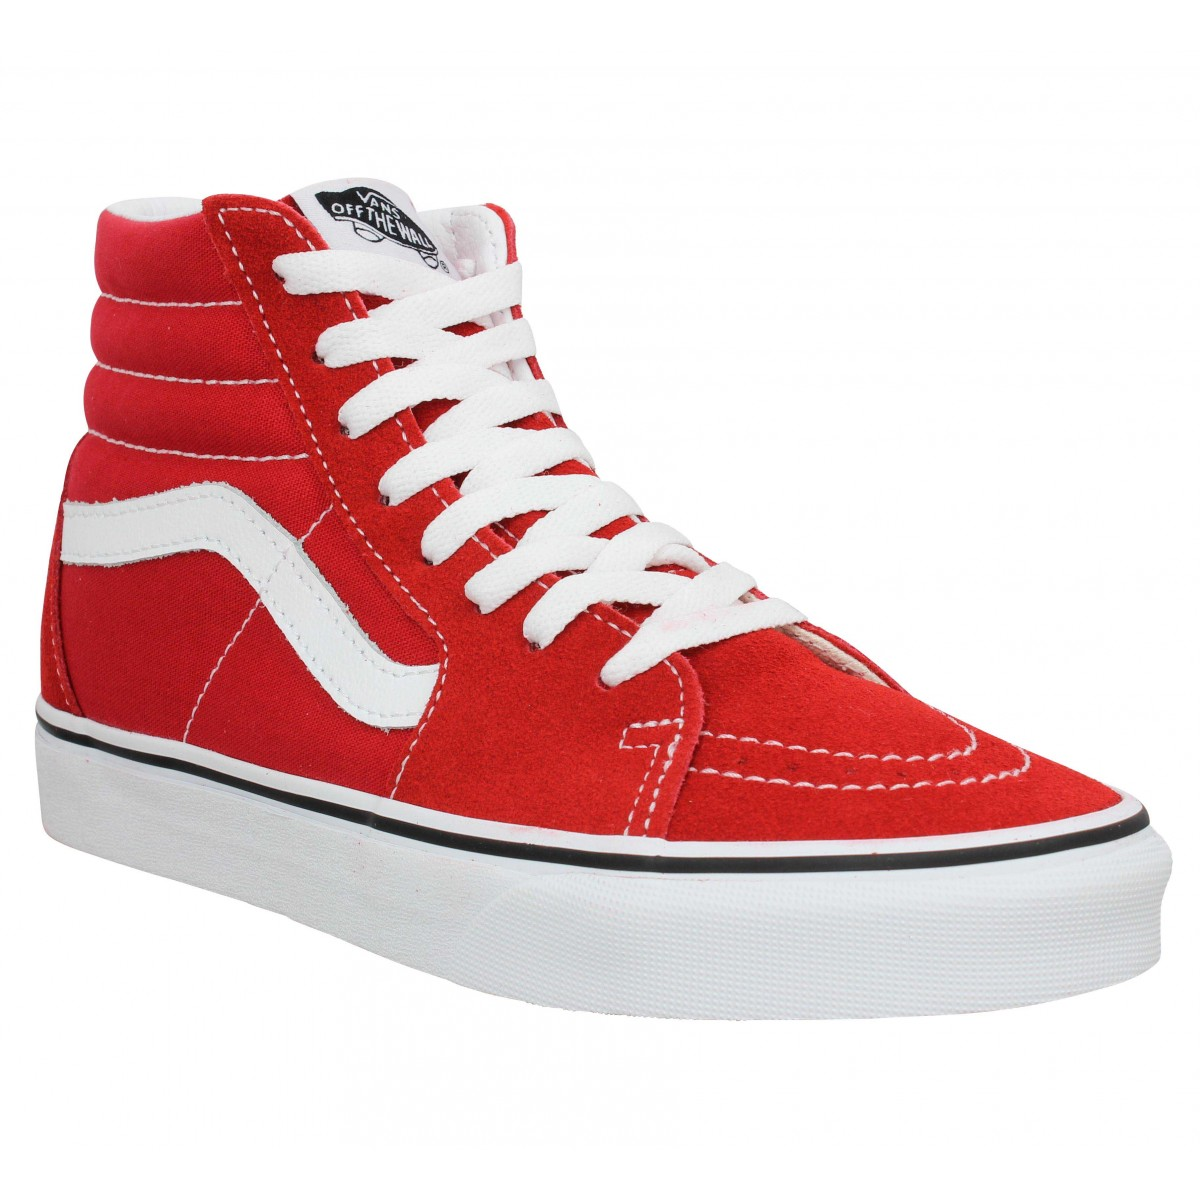 Baskets VANS SK8 Hi velours toile Racing Red